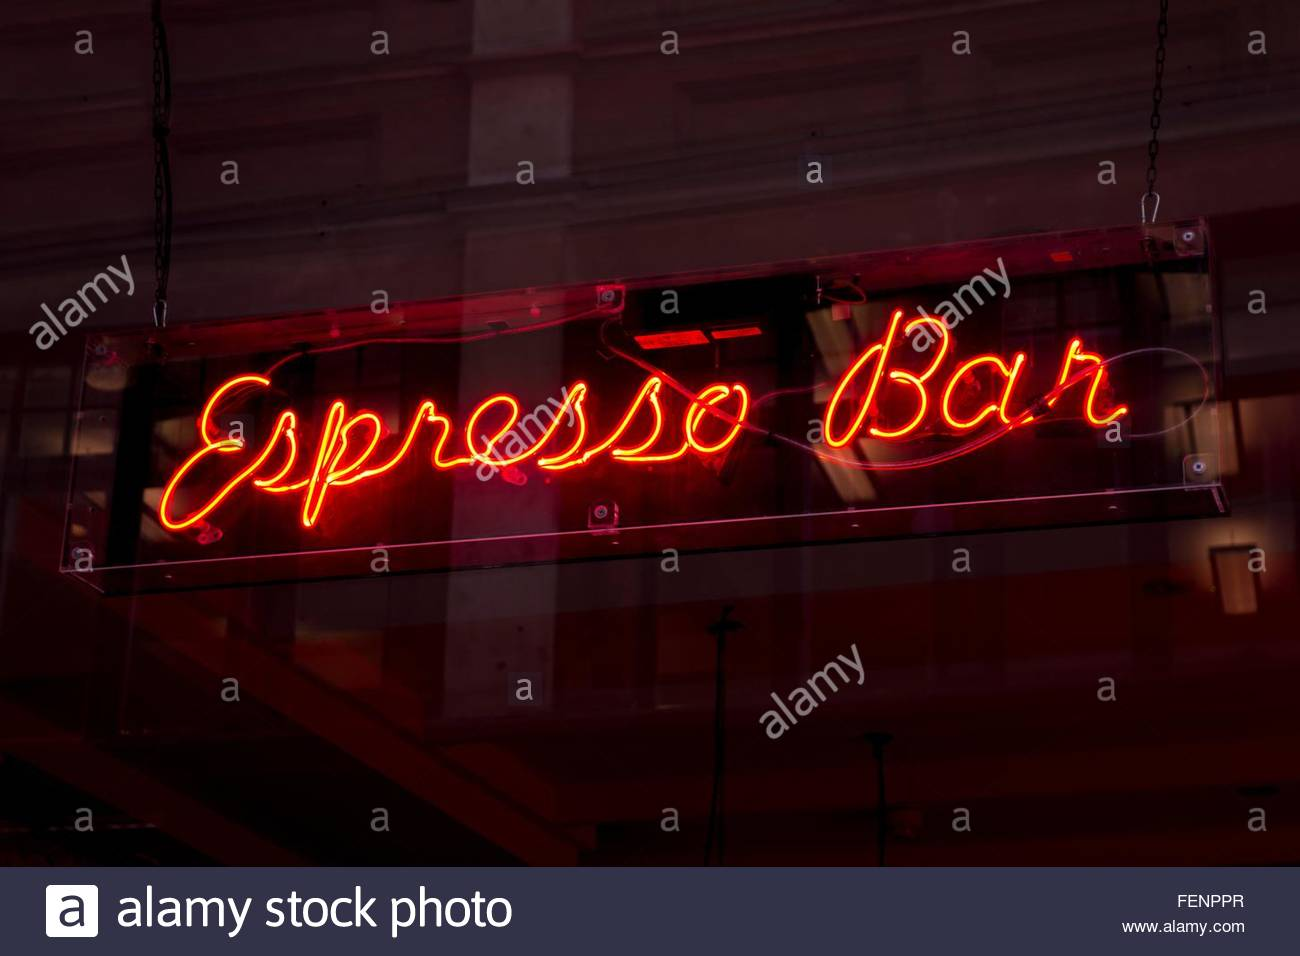 Neon sign at night - Stock Image